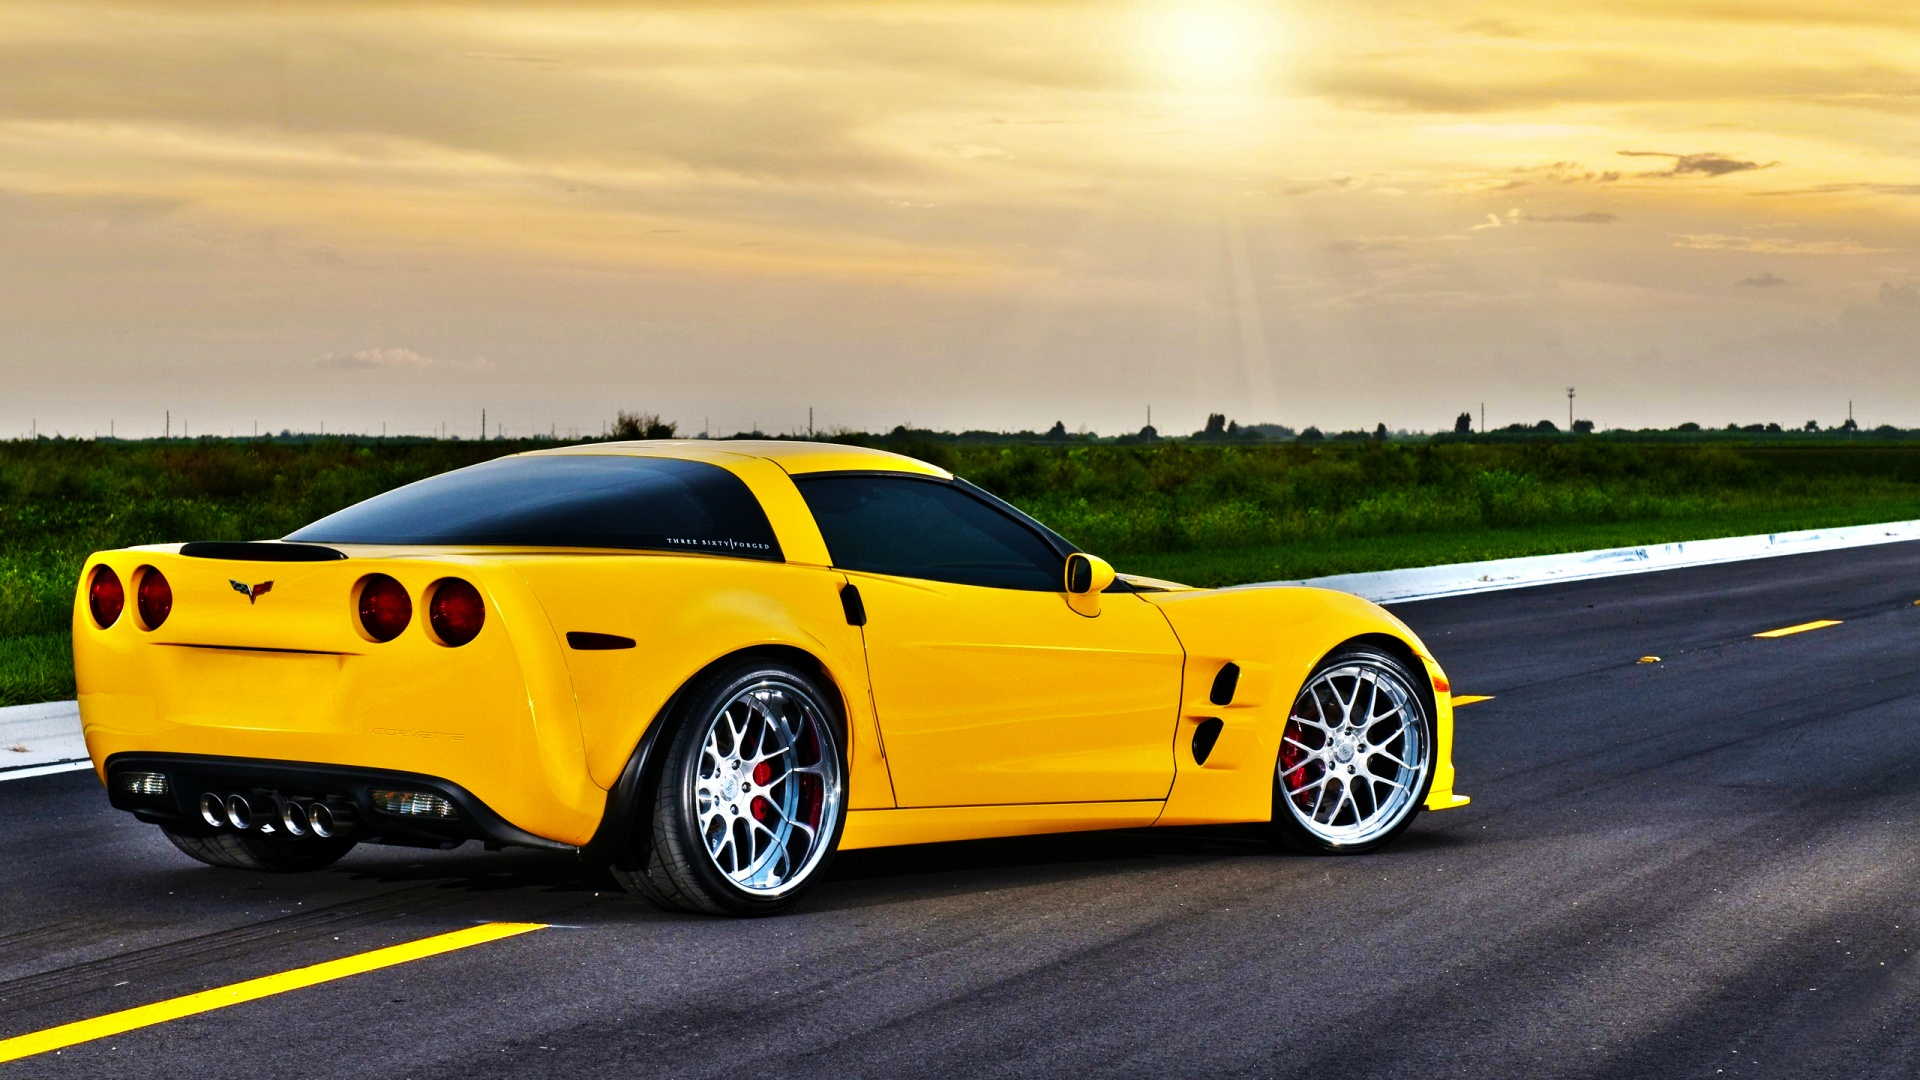 Corvette zr1 wallpaper wallpapersafari